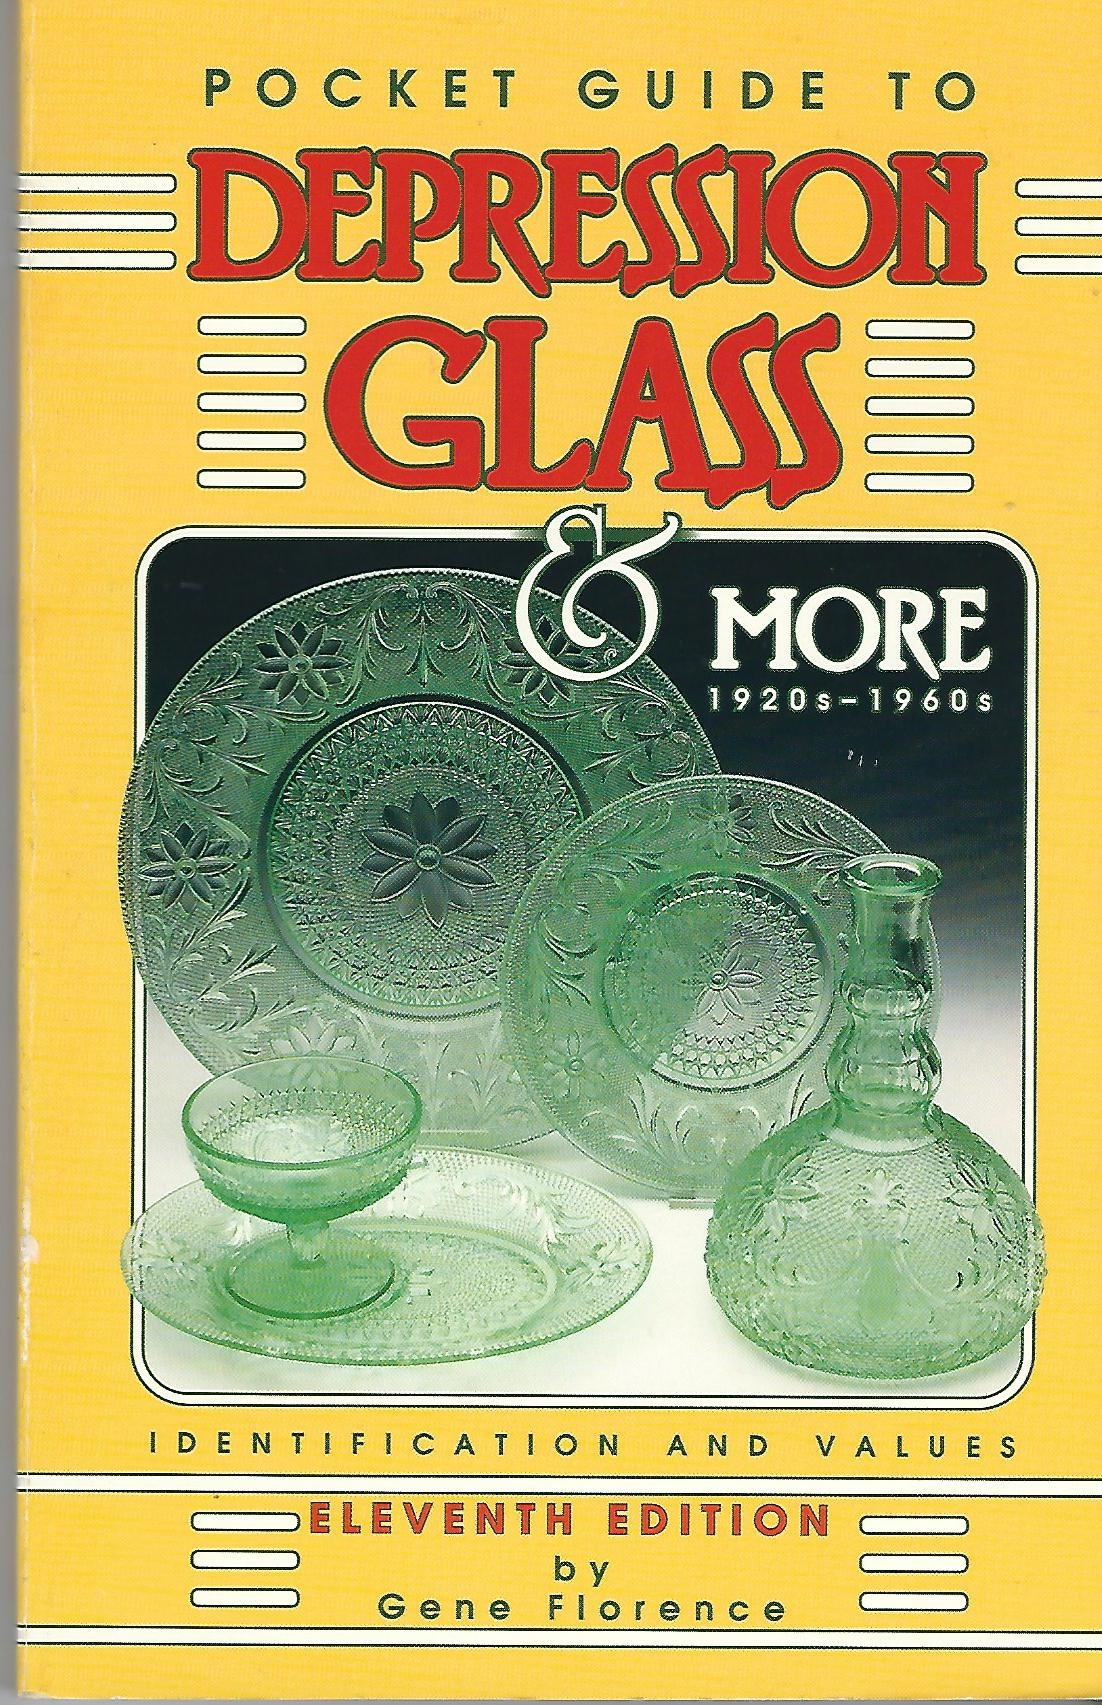 Image for Pocket Guide To Depression Glass & More 1920s-1960s Identification and Values, Eleventh Edition